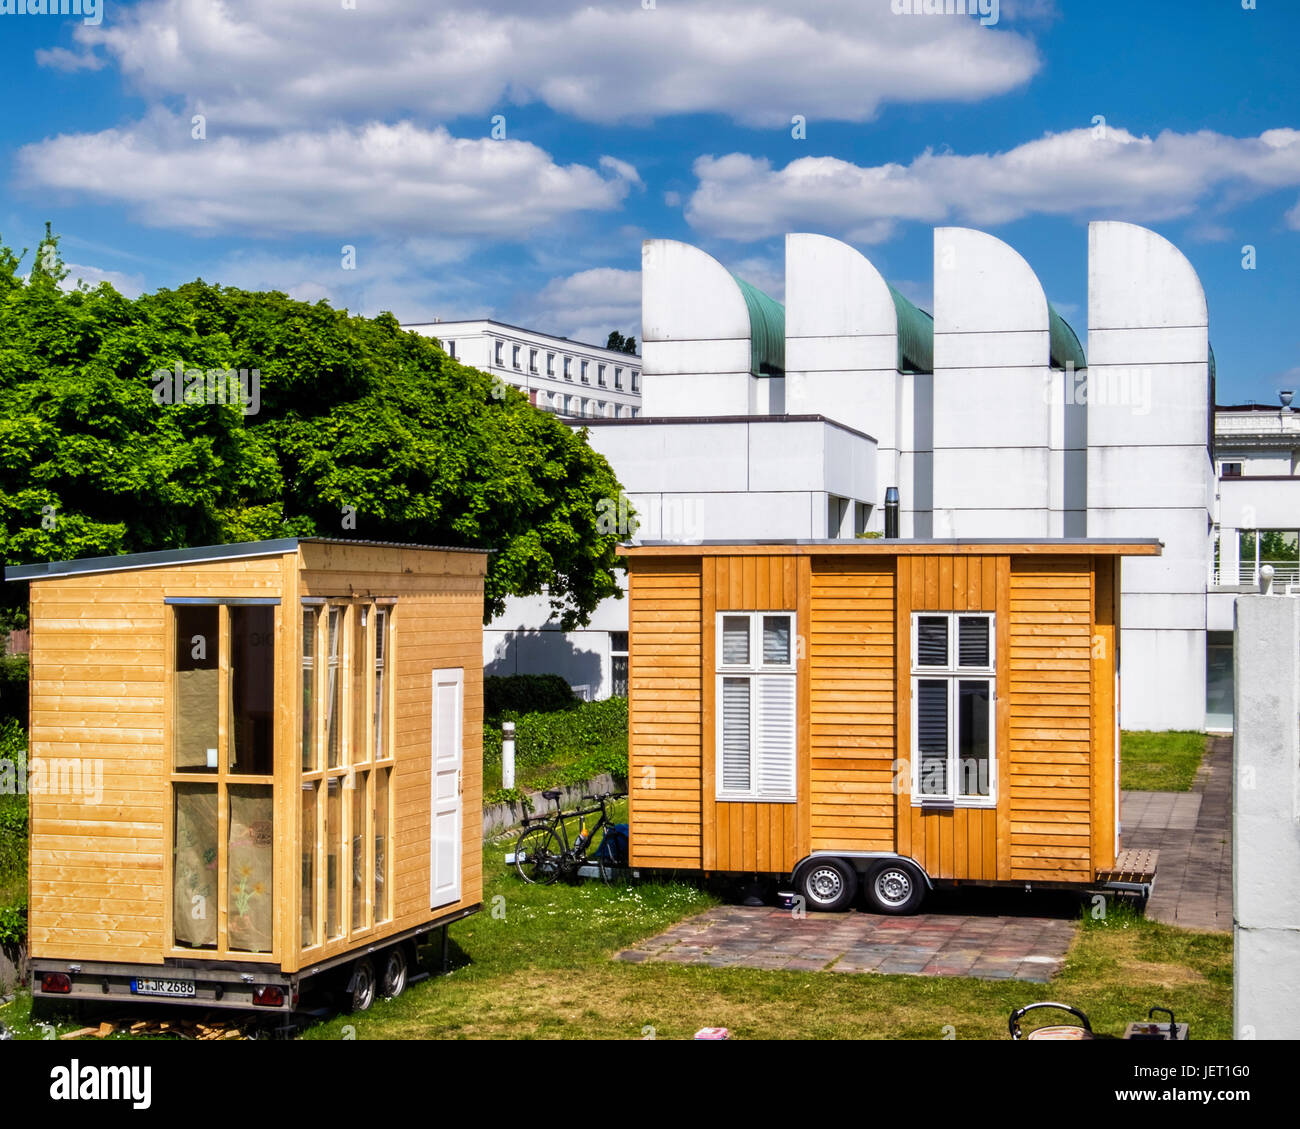 berlin tiergarten bauhaus archives campus tinyhouse university stock photo royalty free image. Black Bedroom Furniture Sets. Home Design Ideas